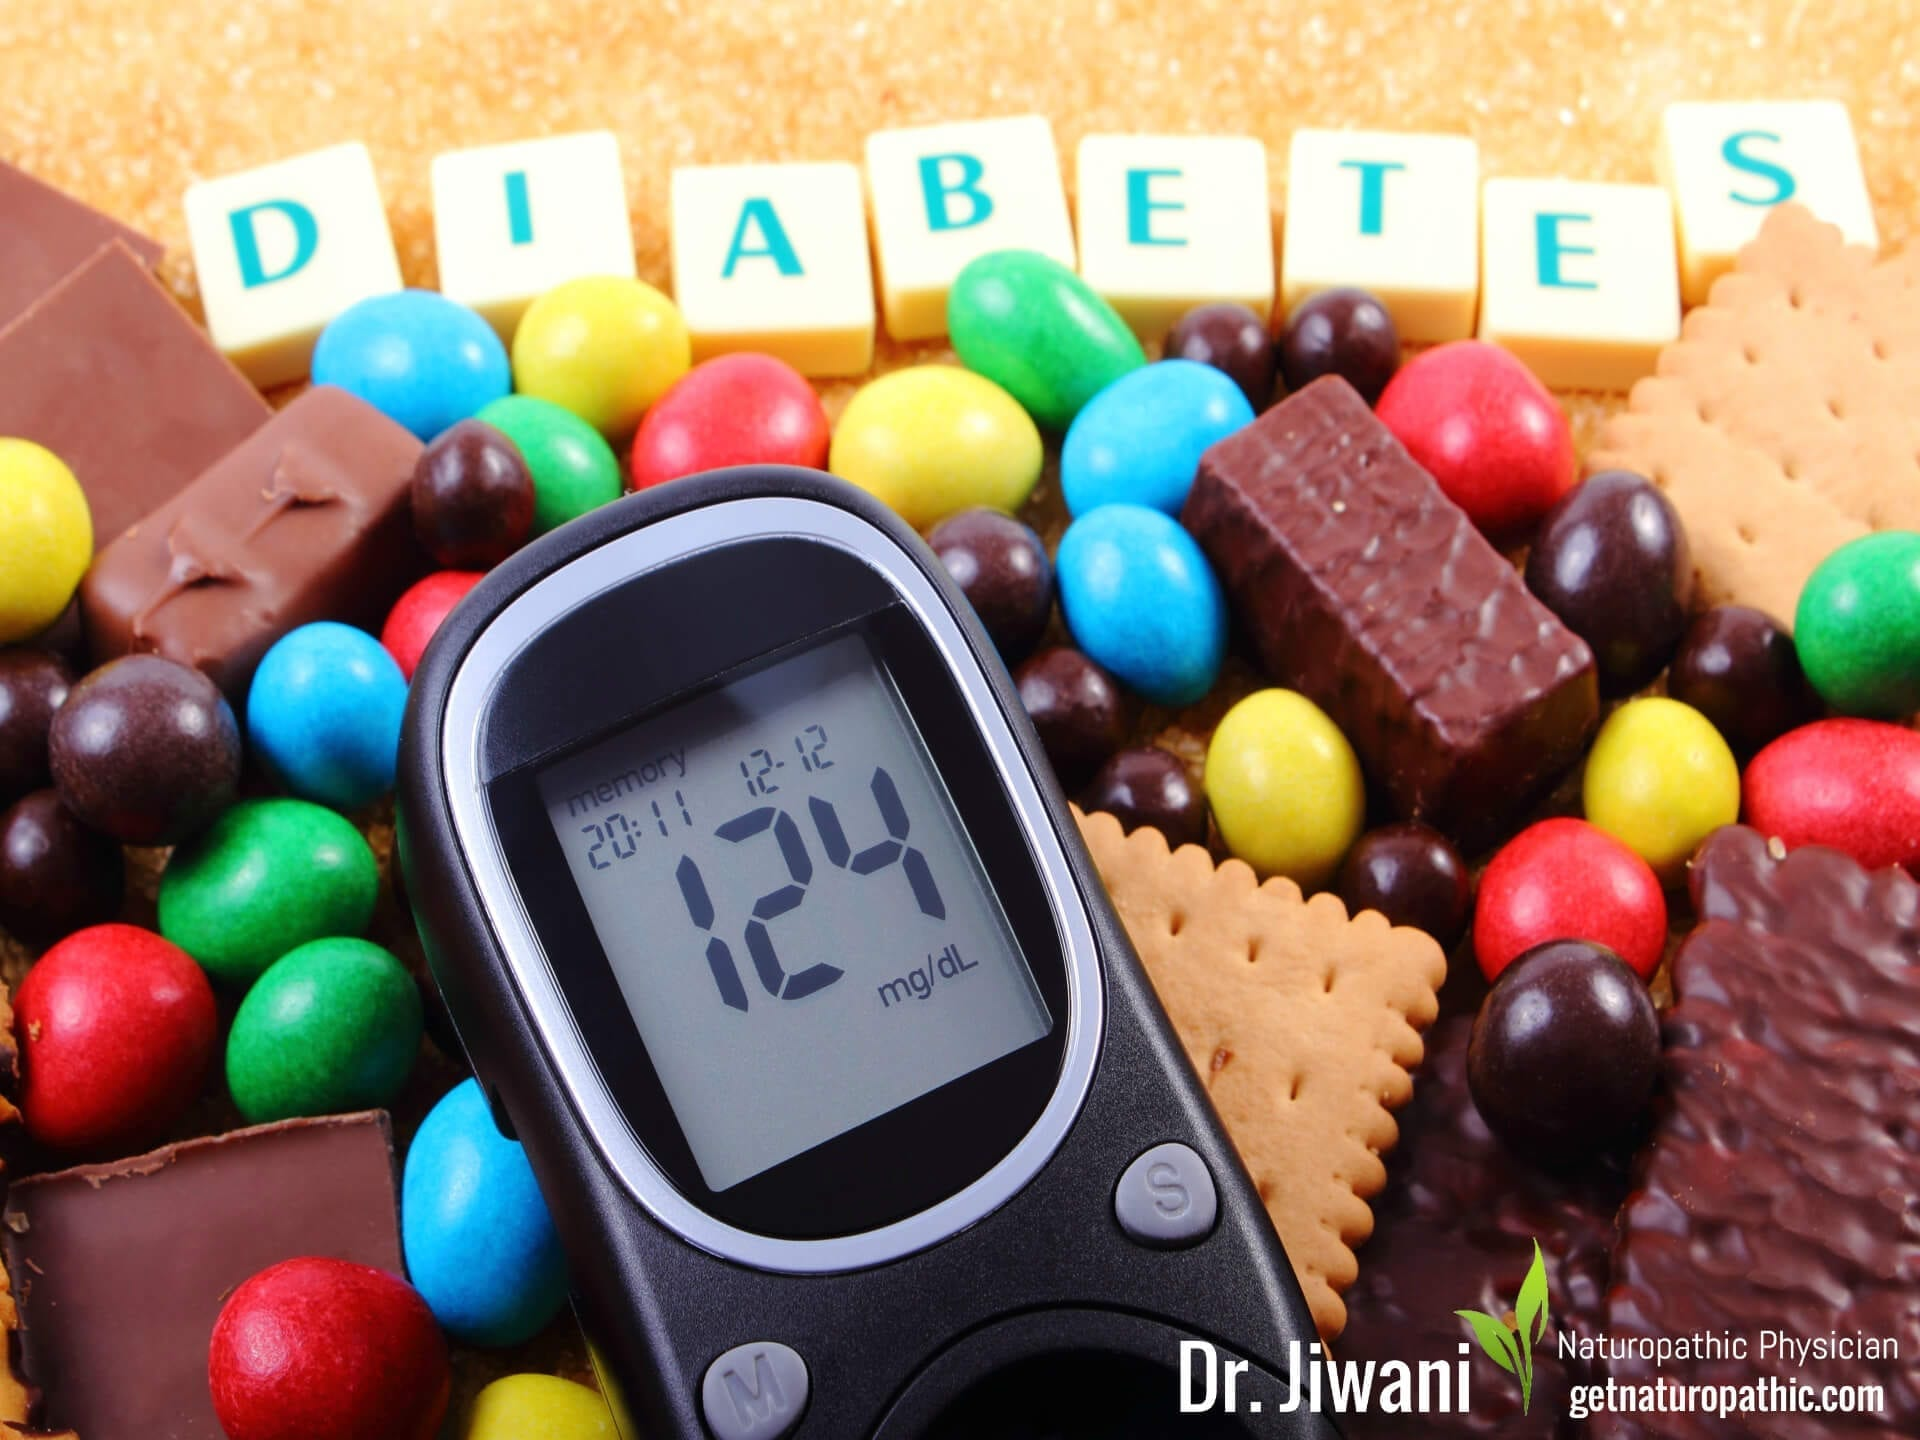 DrJiwani Intermittent Fasting for Health, Energy & Weight Loss Diabetes* | Dr. Jiwani's Naturopathic Nuggets Blog